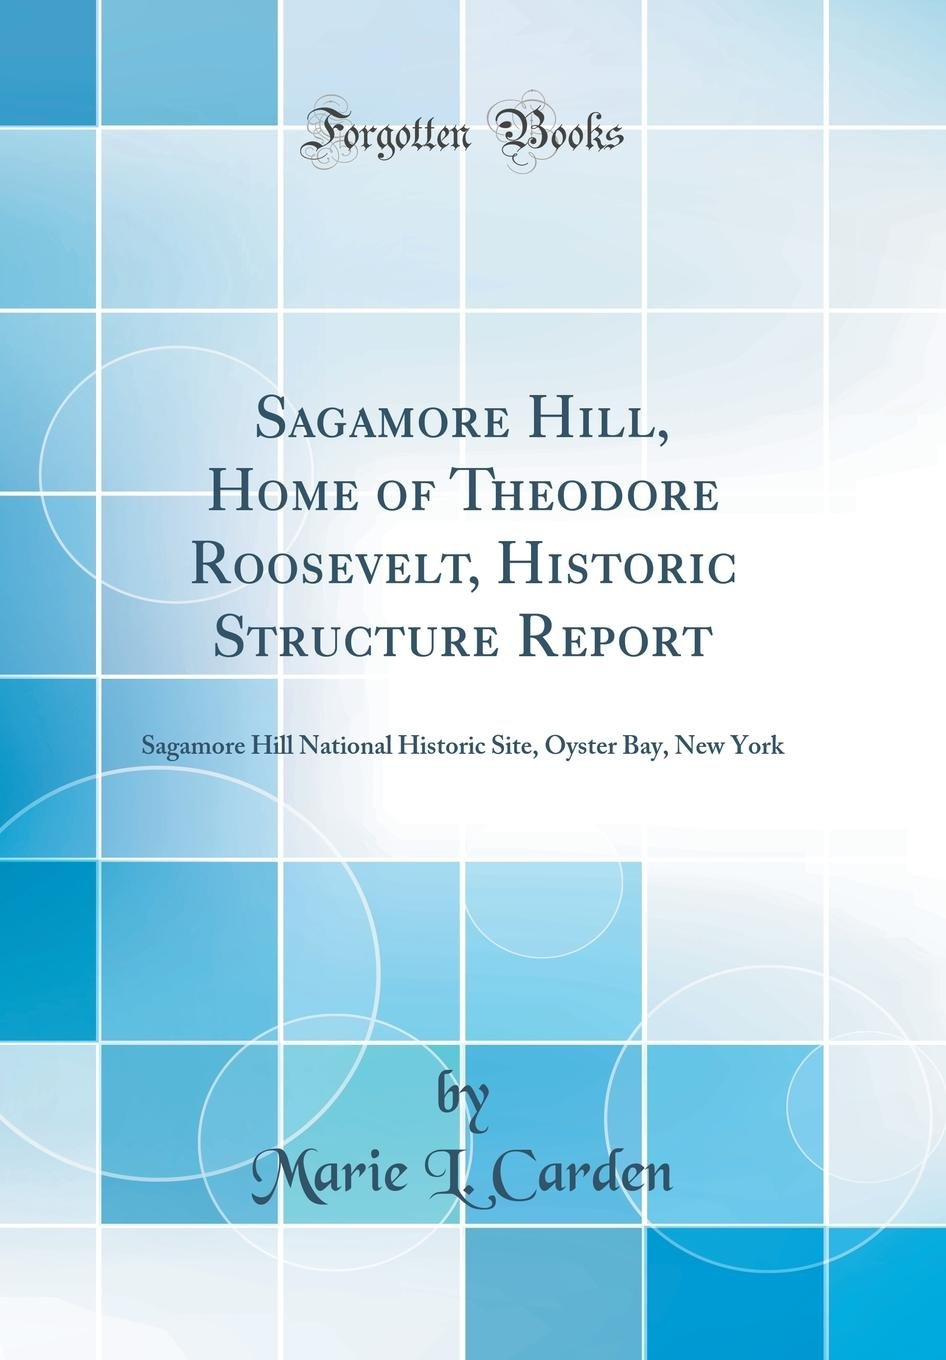 Download Sagamore Hill, Home of Theodore Roosevelt, Historic Structure Report: Sagamore Hill National Historic Site, Oyster Bay, New York (Classic Reprint) PDF